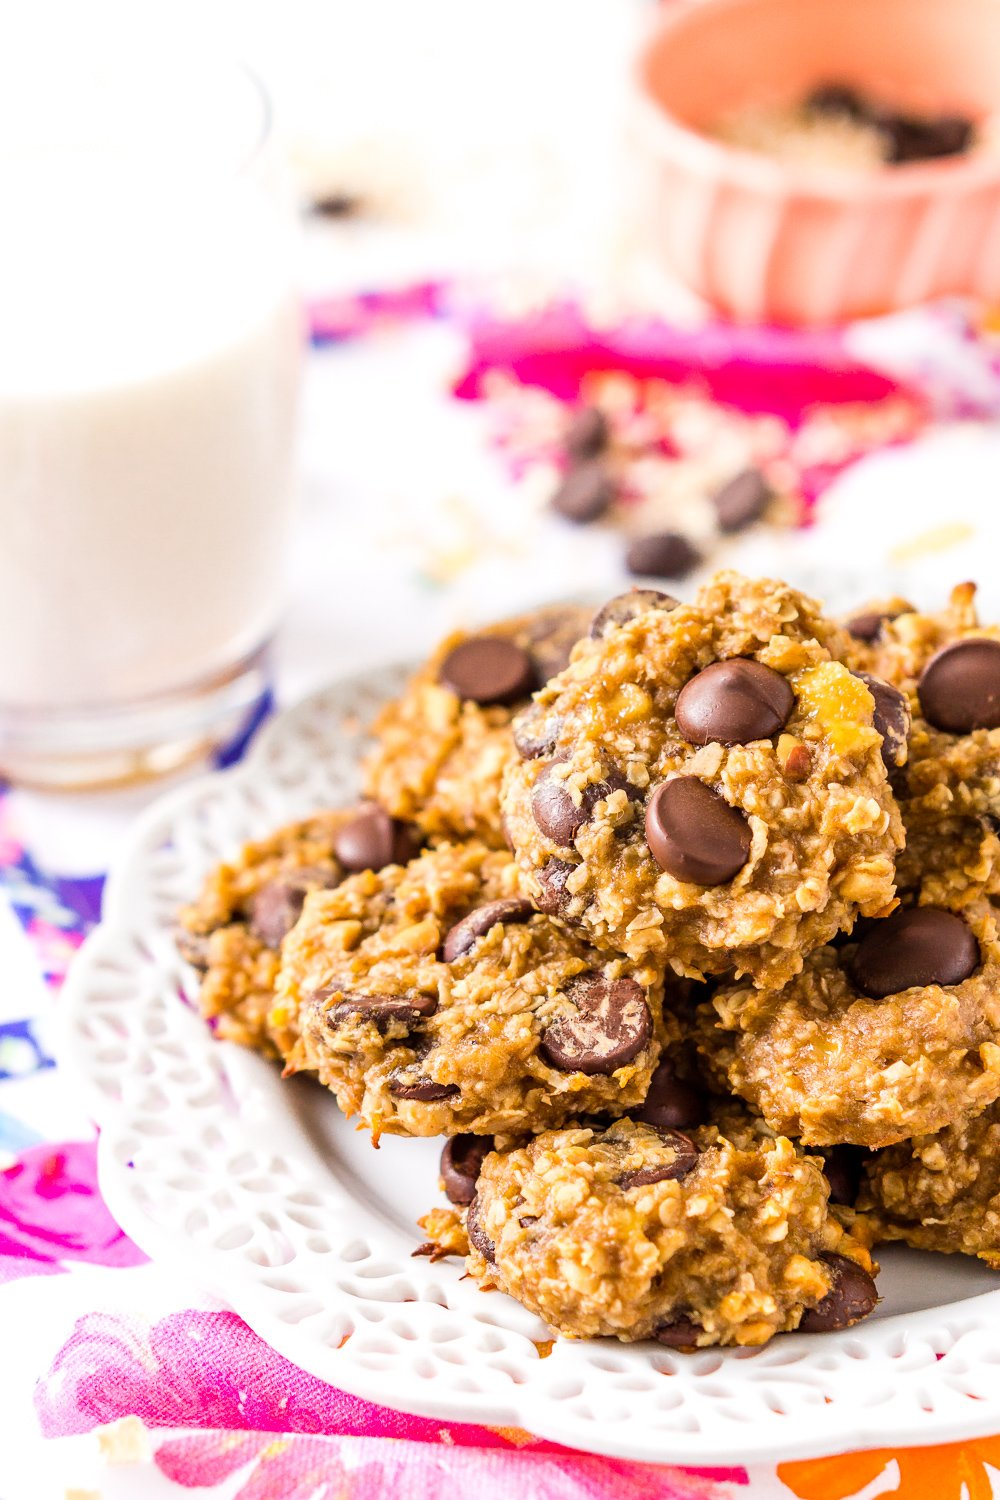 Banana Oatmeal Cookies on white plate on colorful napkin with glass of milk and pink bowl in background